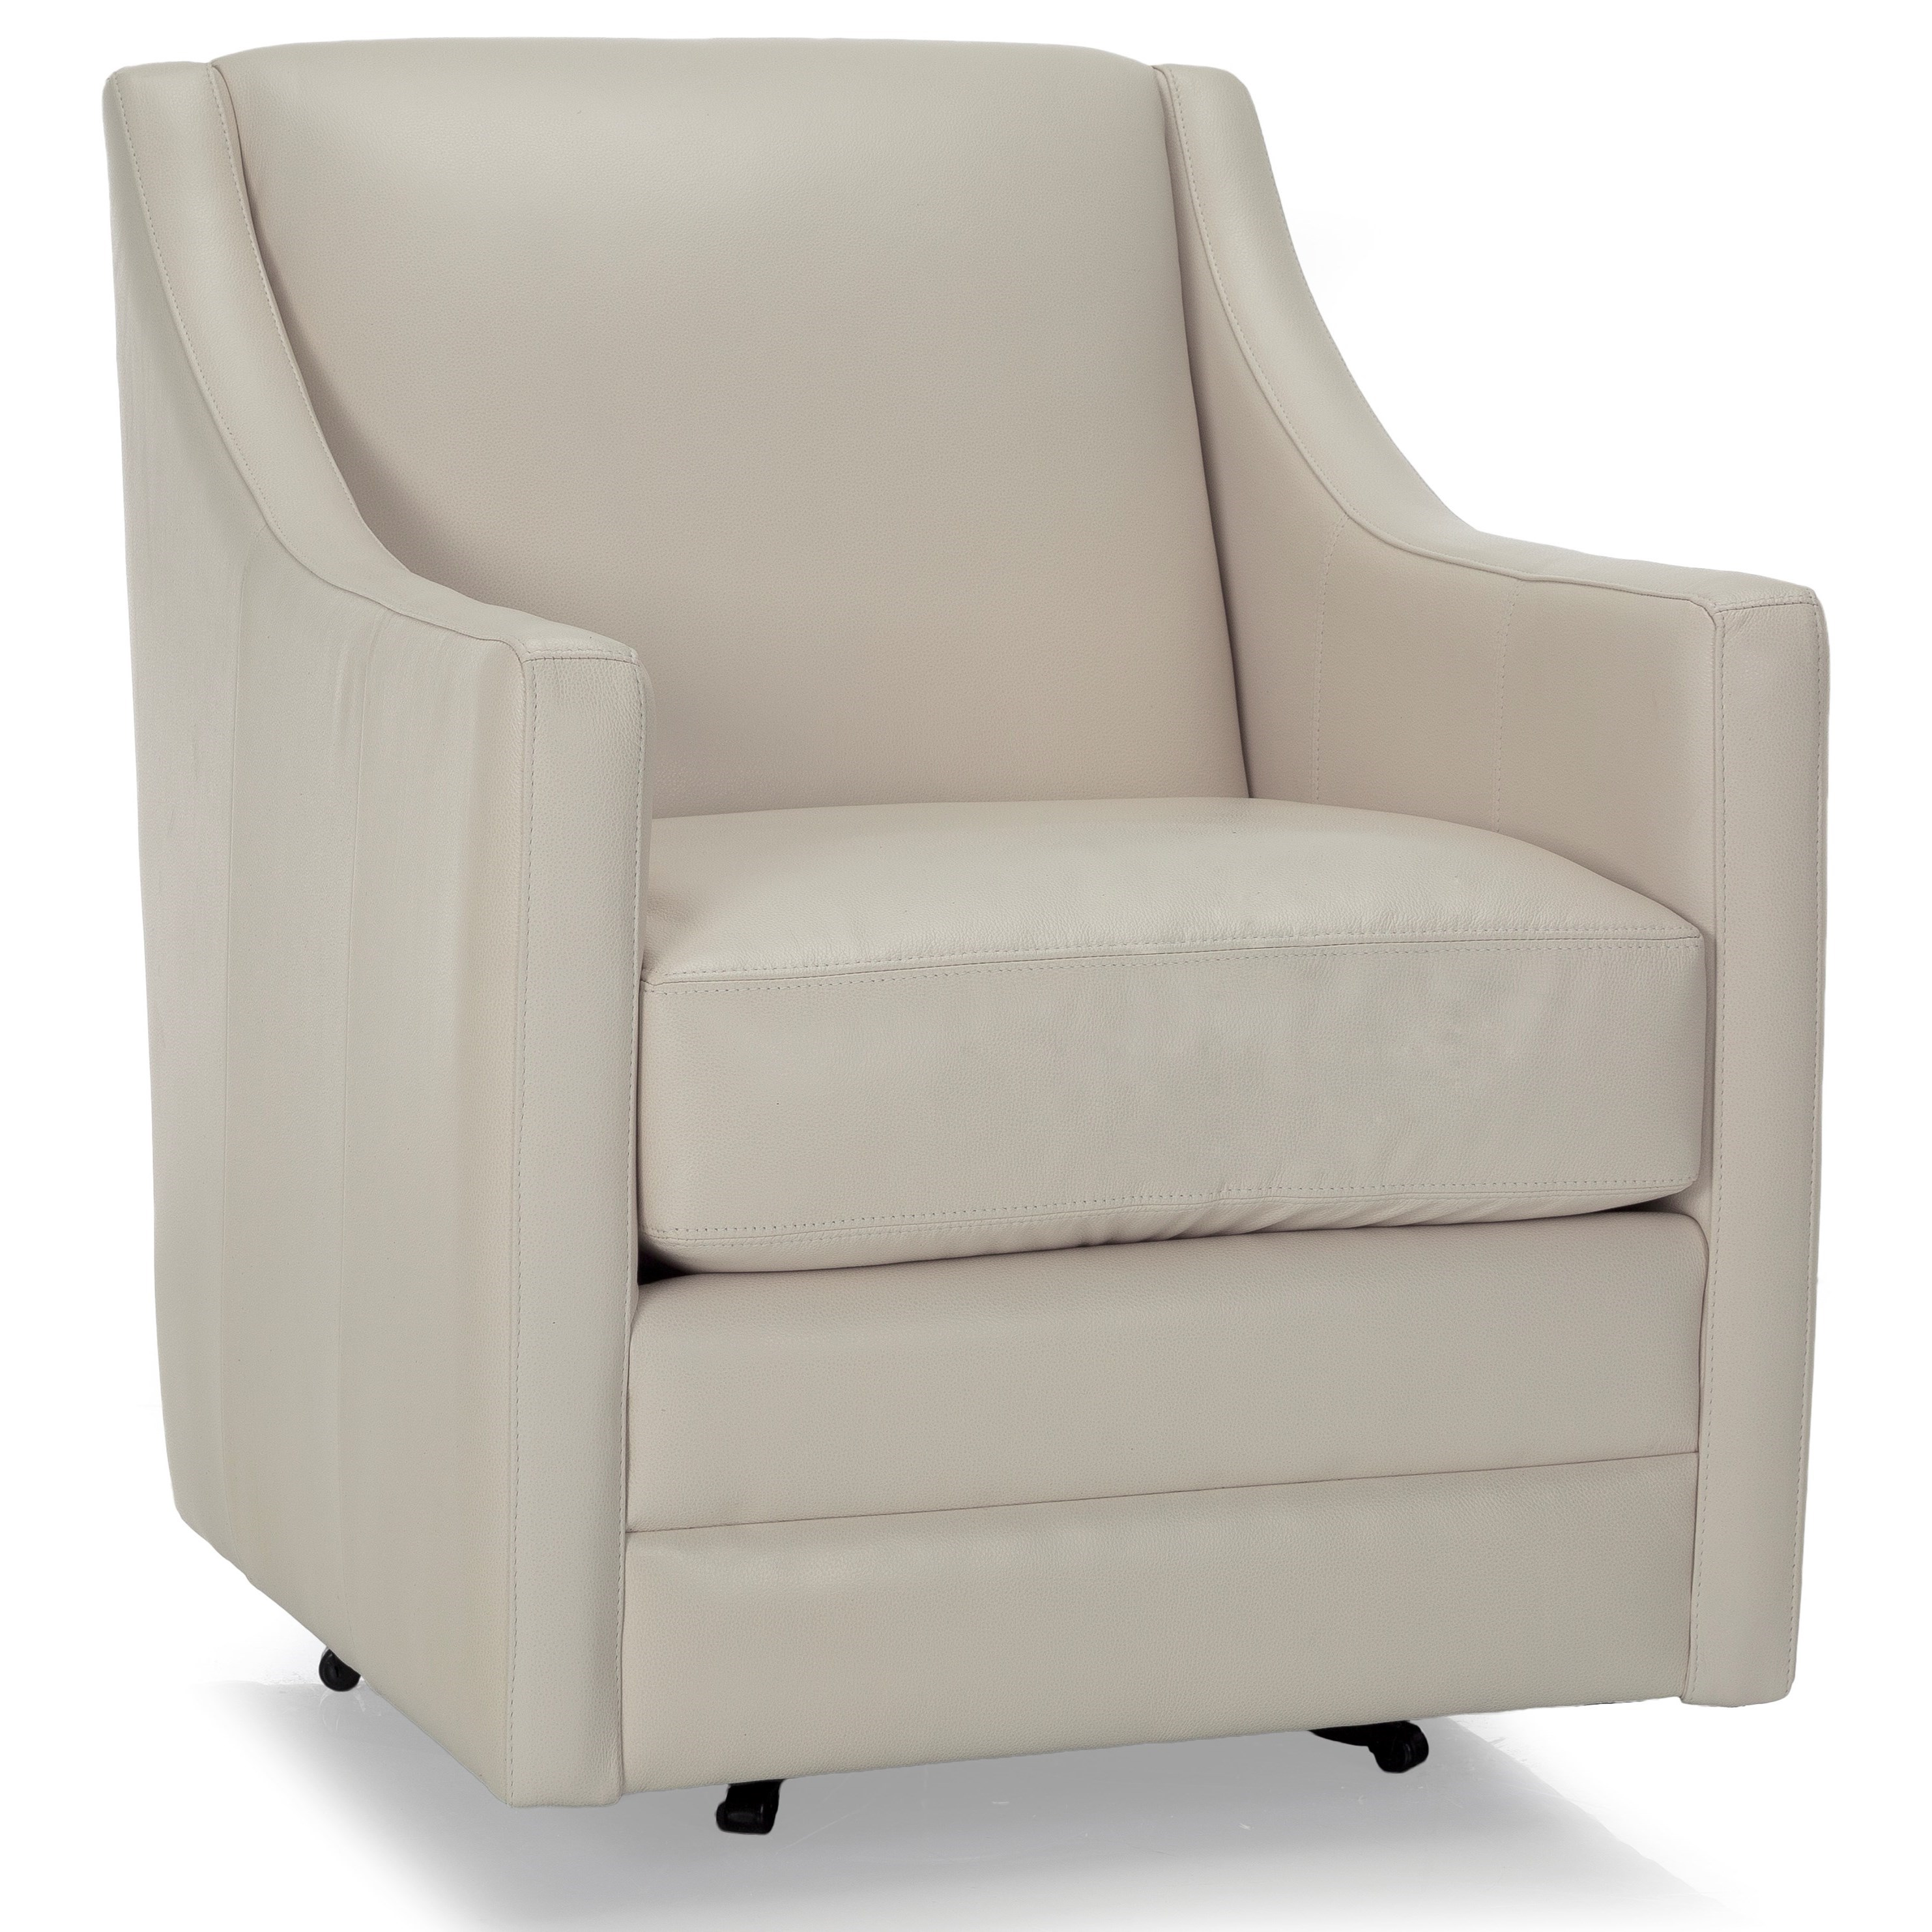 2443 Swivel Chair by Decor-Rest at Johnny Janosik